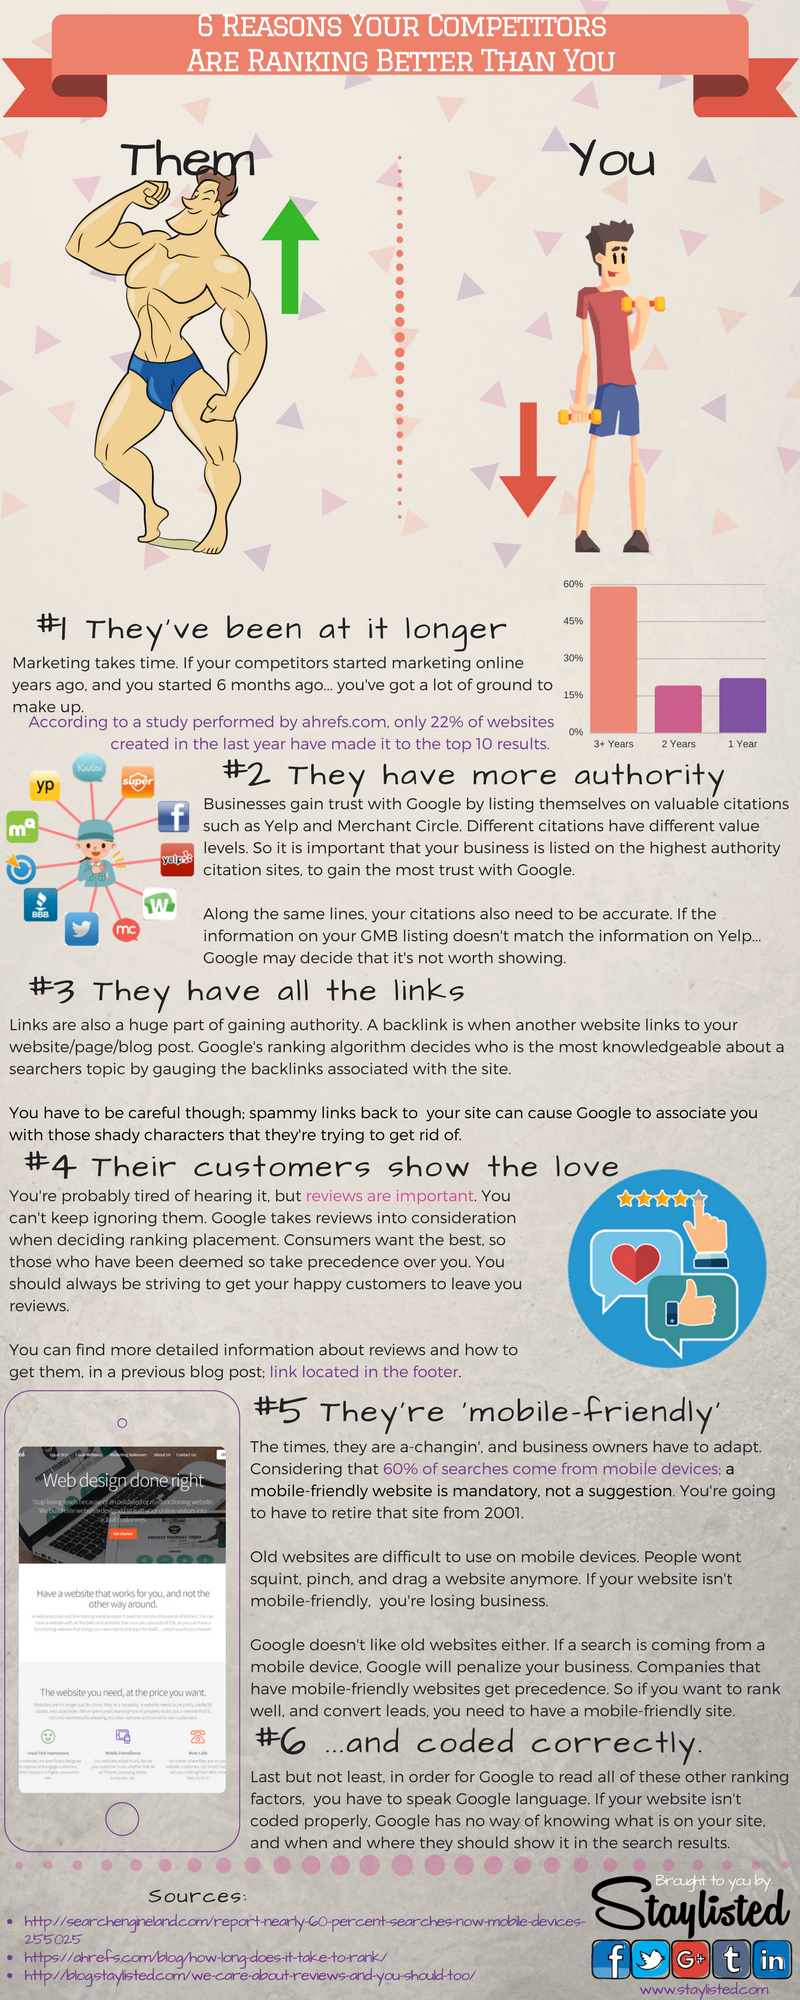 6-Reasons-Your-Competitors-Are-Outranking-You.png